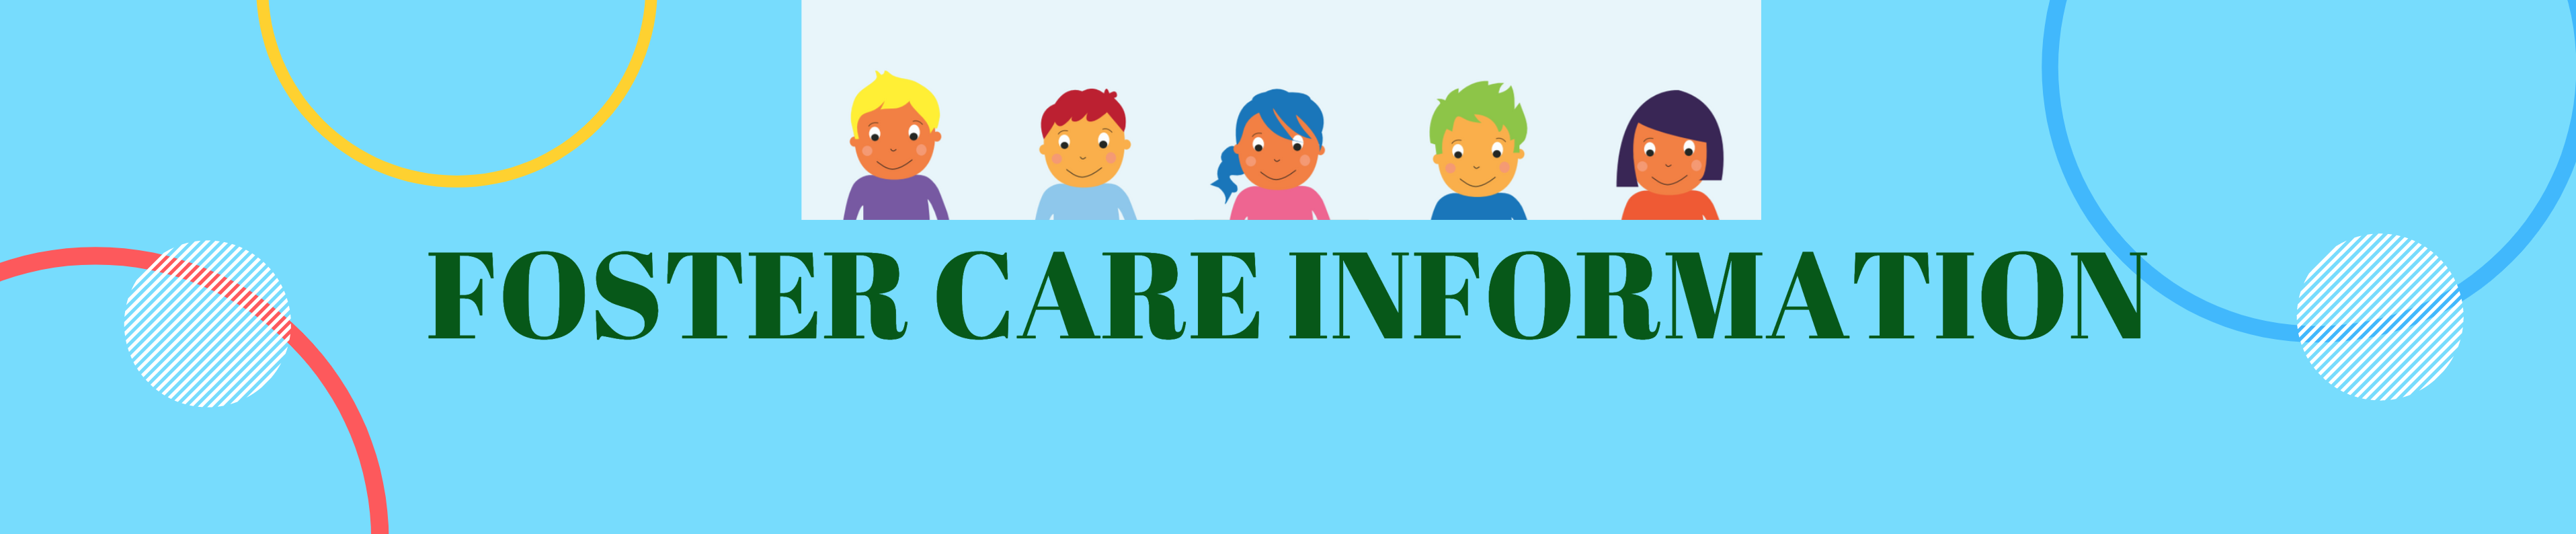 Foster Care Information